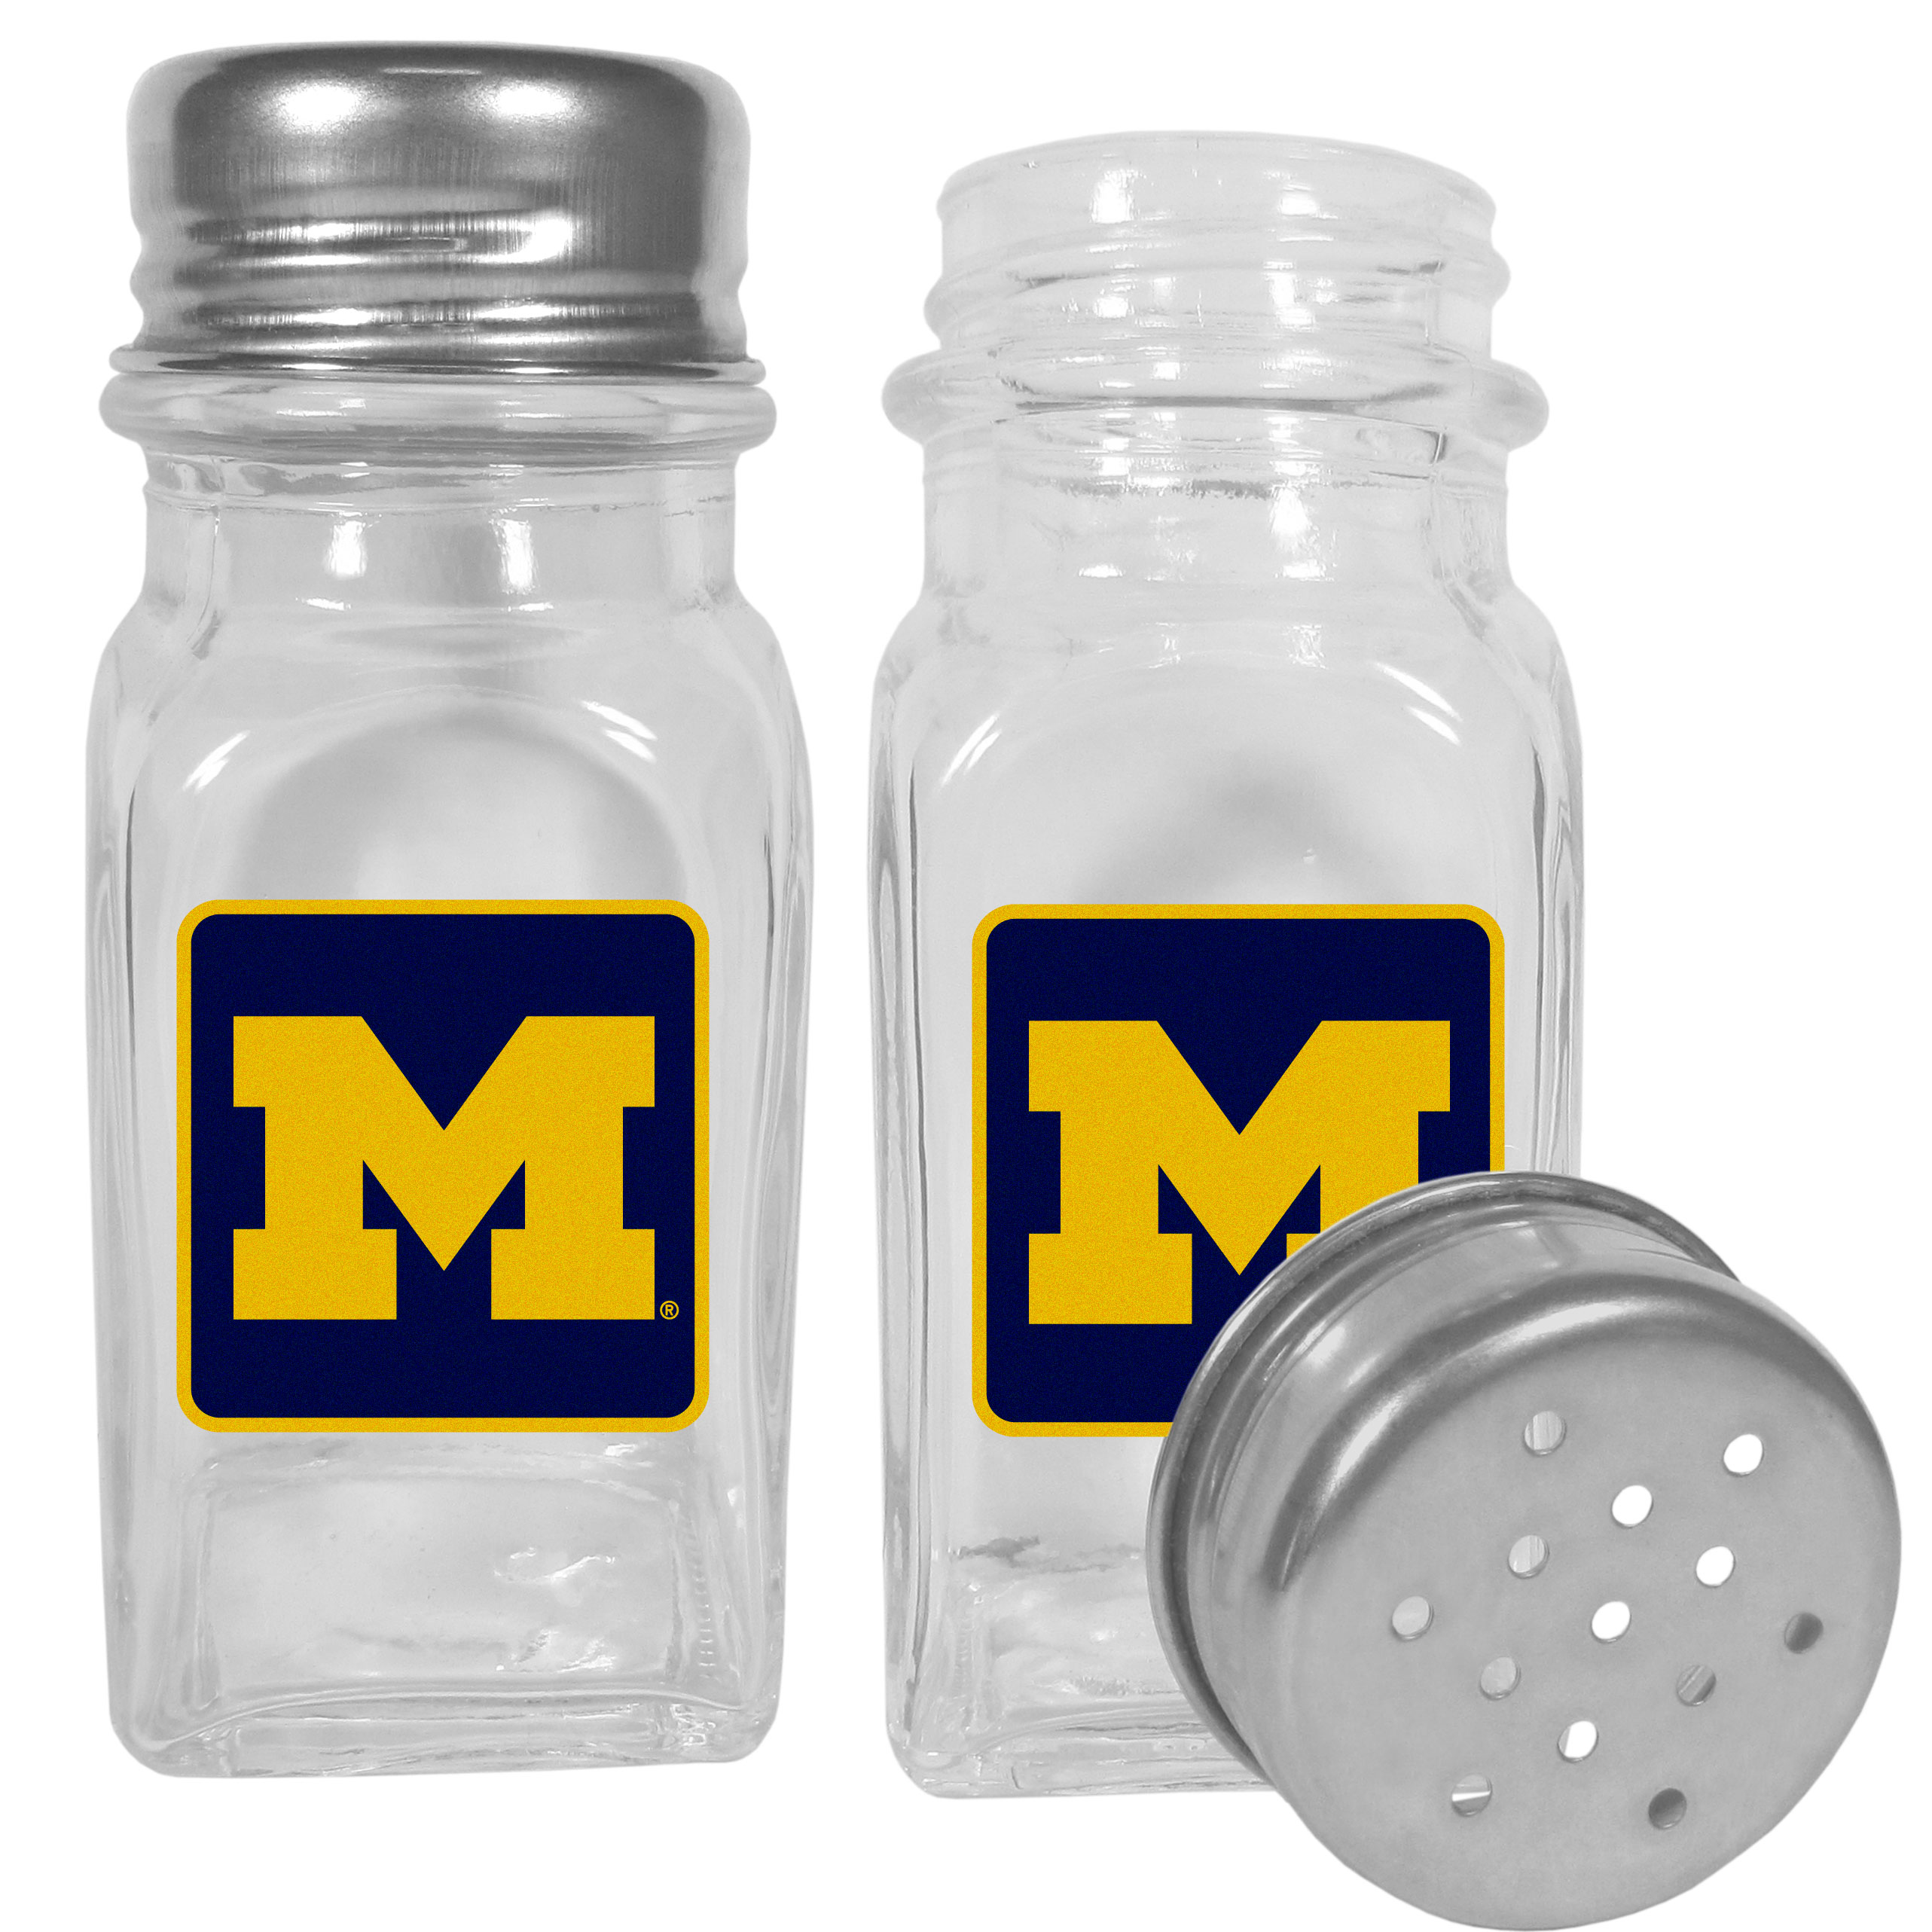 Michigan Wolverines Graphics Salt and Pepper Shaker - No tailgate party is complete without your Michigan Wolverines salt & pepper shakers featuring bright team logos. The diner replica salt and pepper shakers are glass with screw top lids. These team shakers are a great grill accessory whether you are barbecuing on the patio, picnicing or having a game day party.